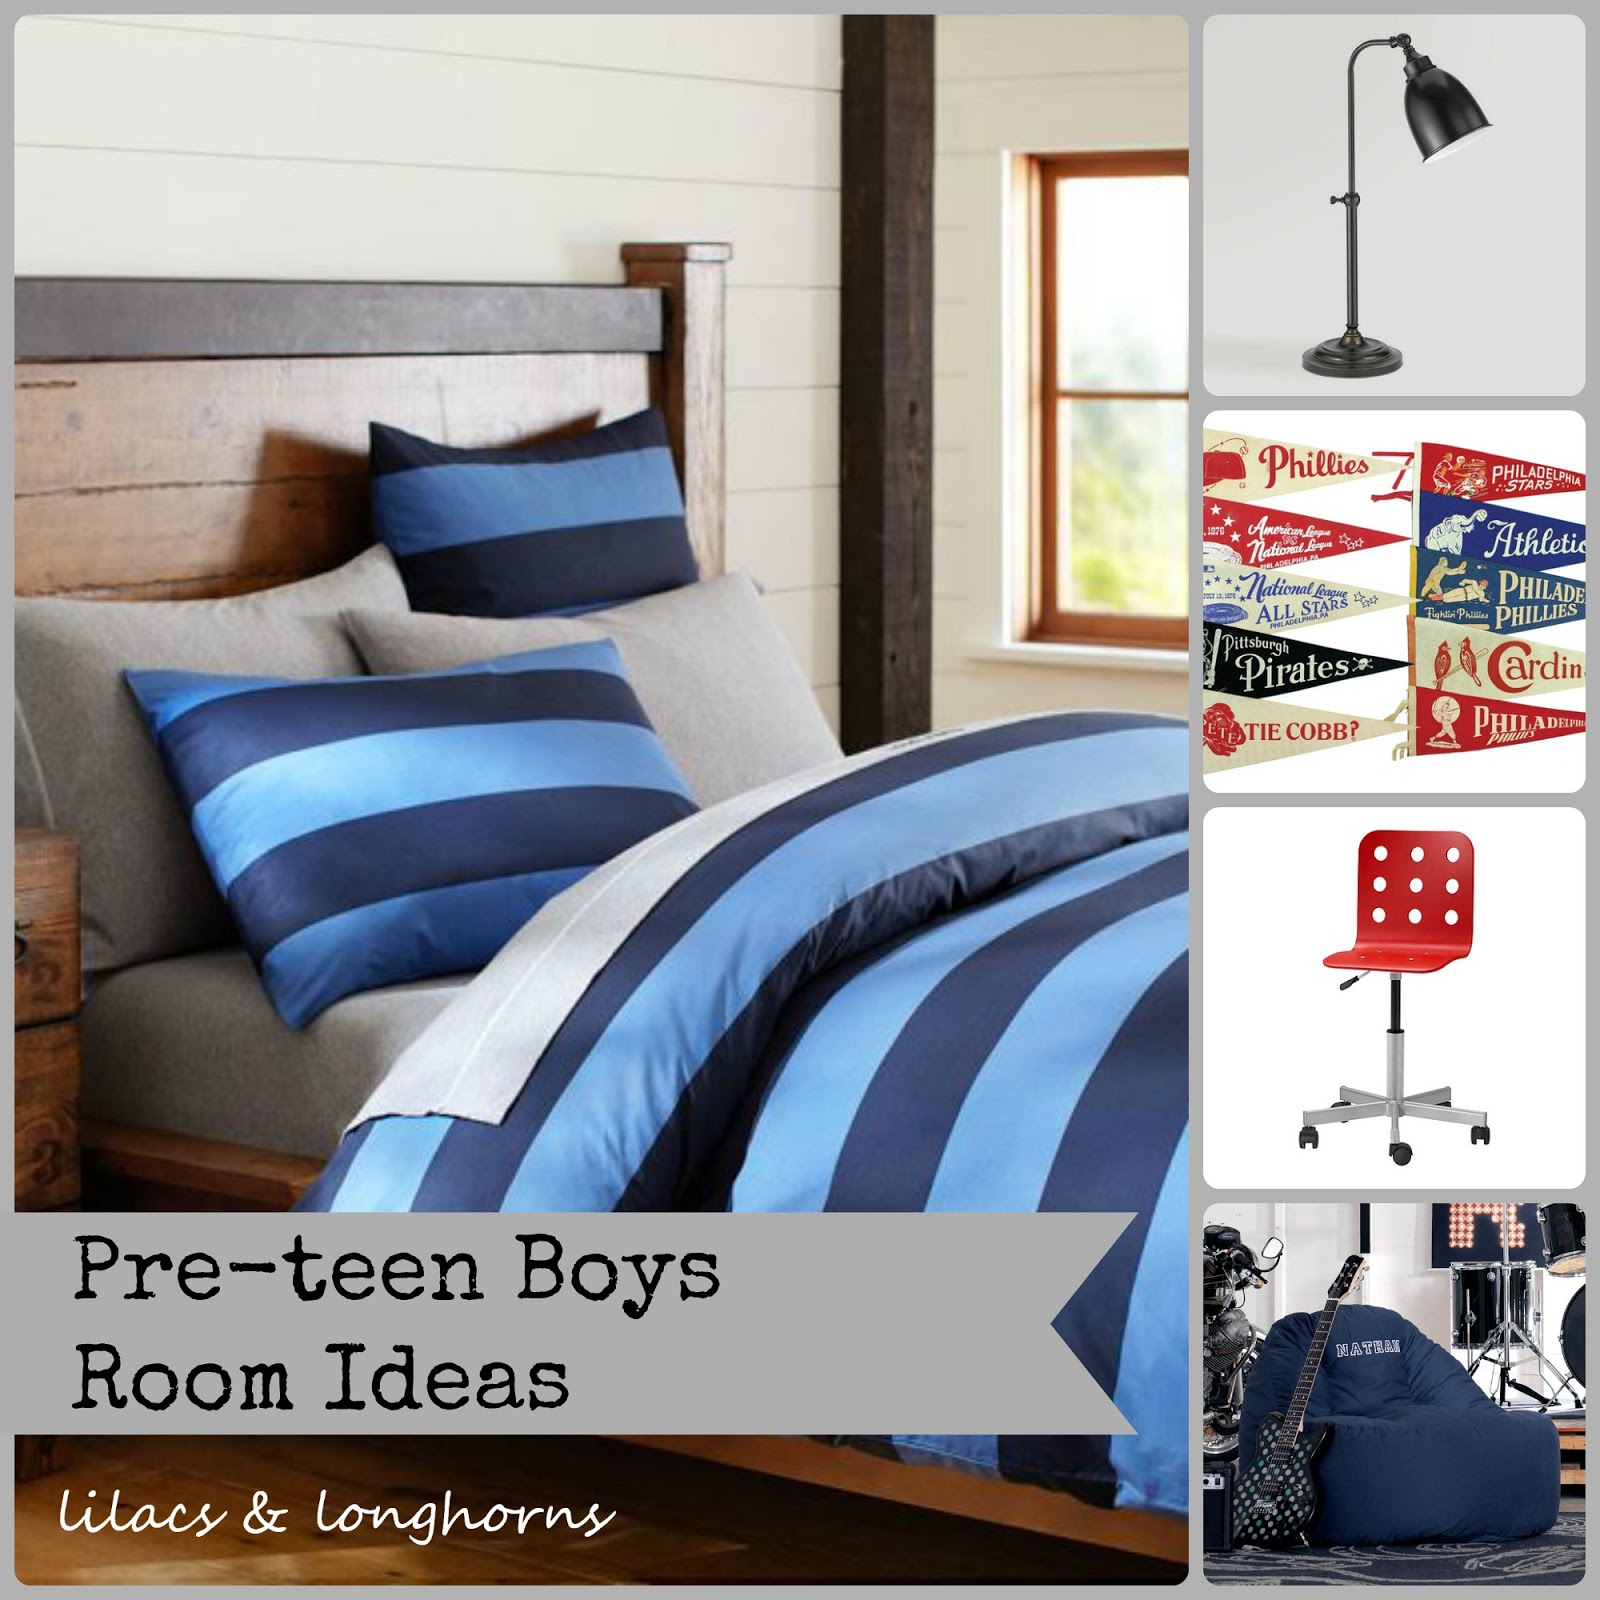 Redirecting for Bedroom ideas teenage guys